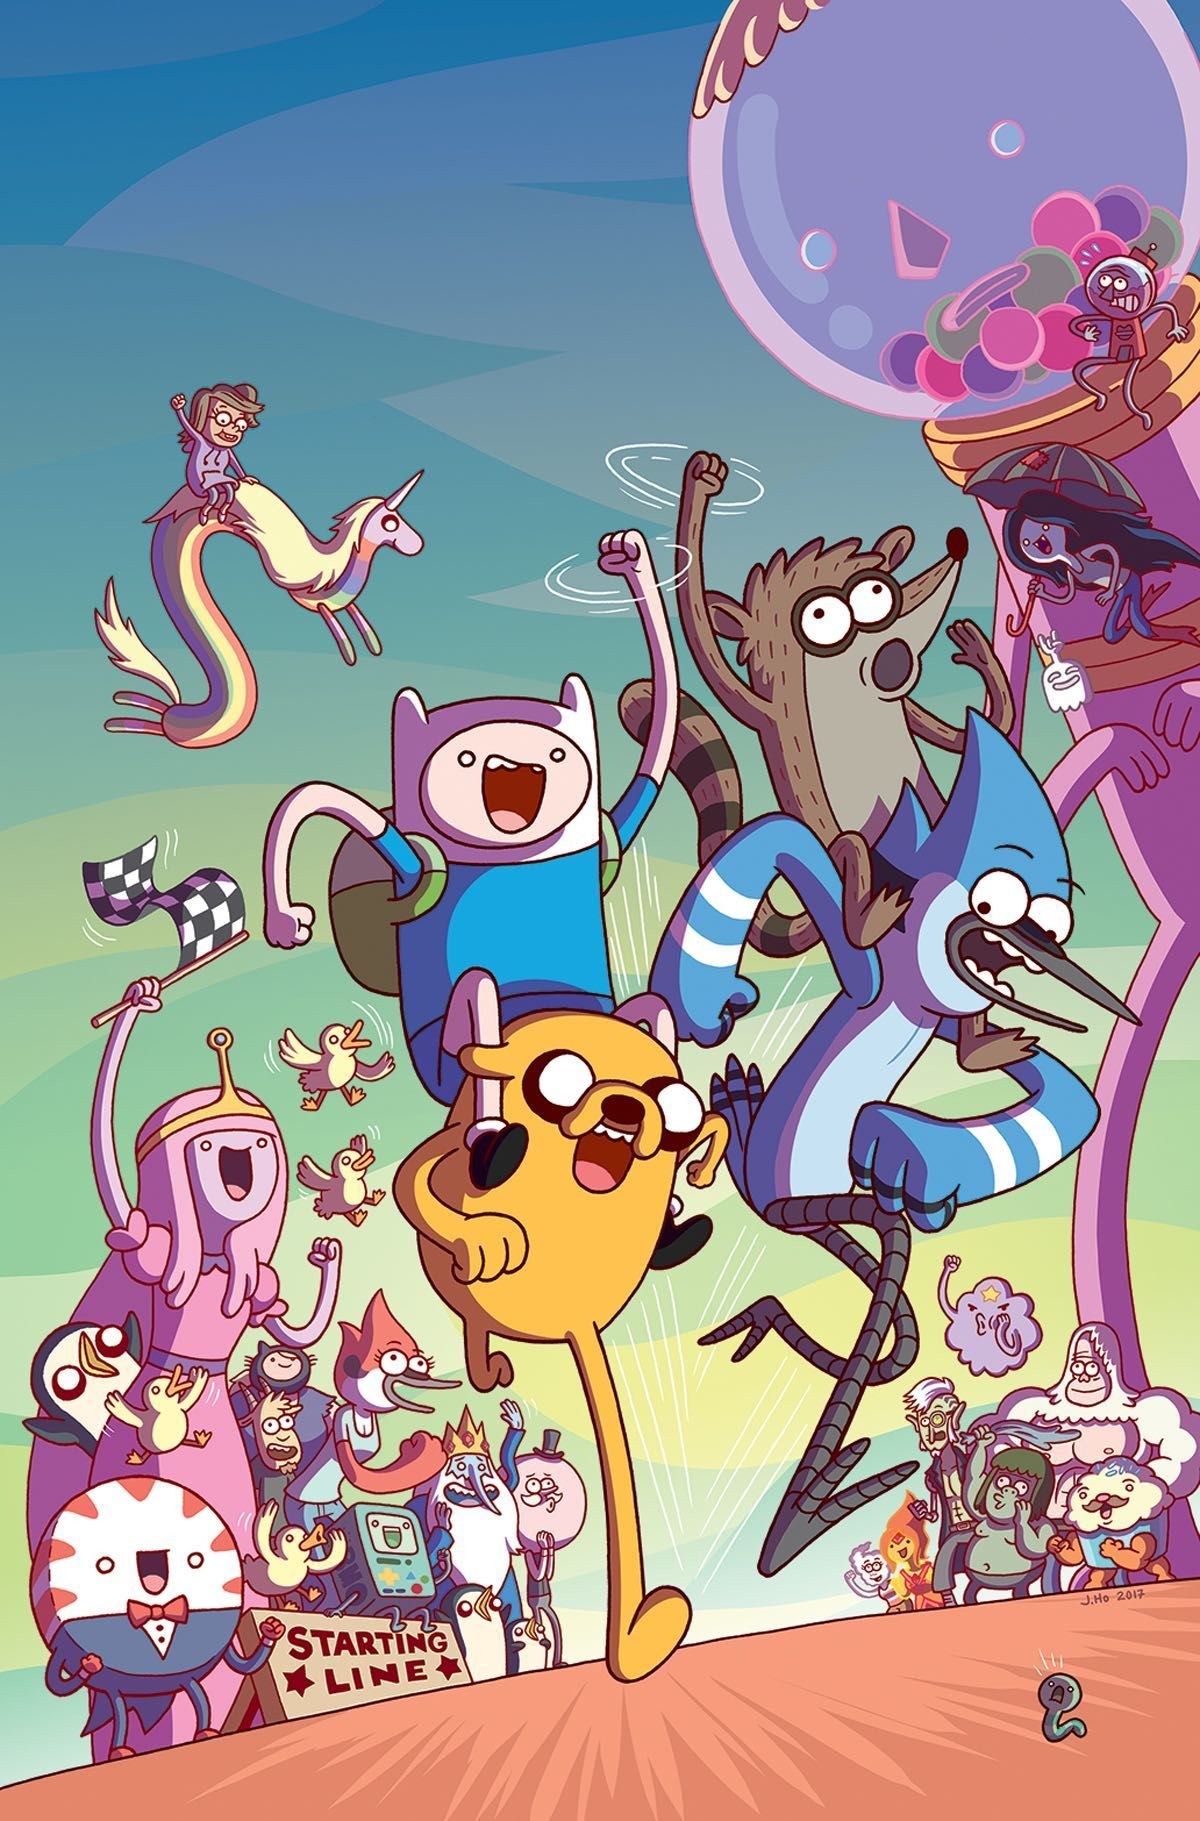 1200x1821 Textless Covers: September 13, 2017 in 2020 | Adventure time ...